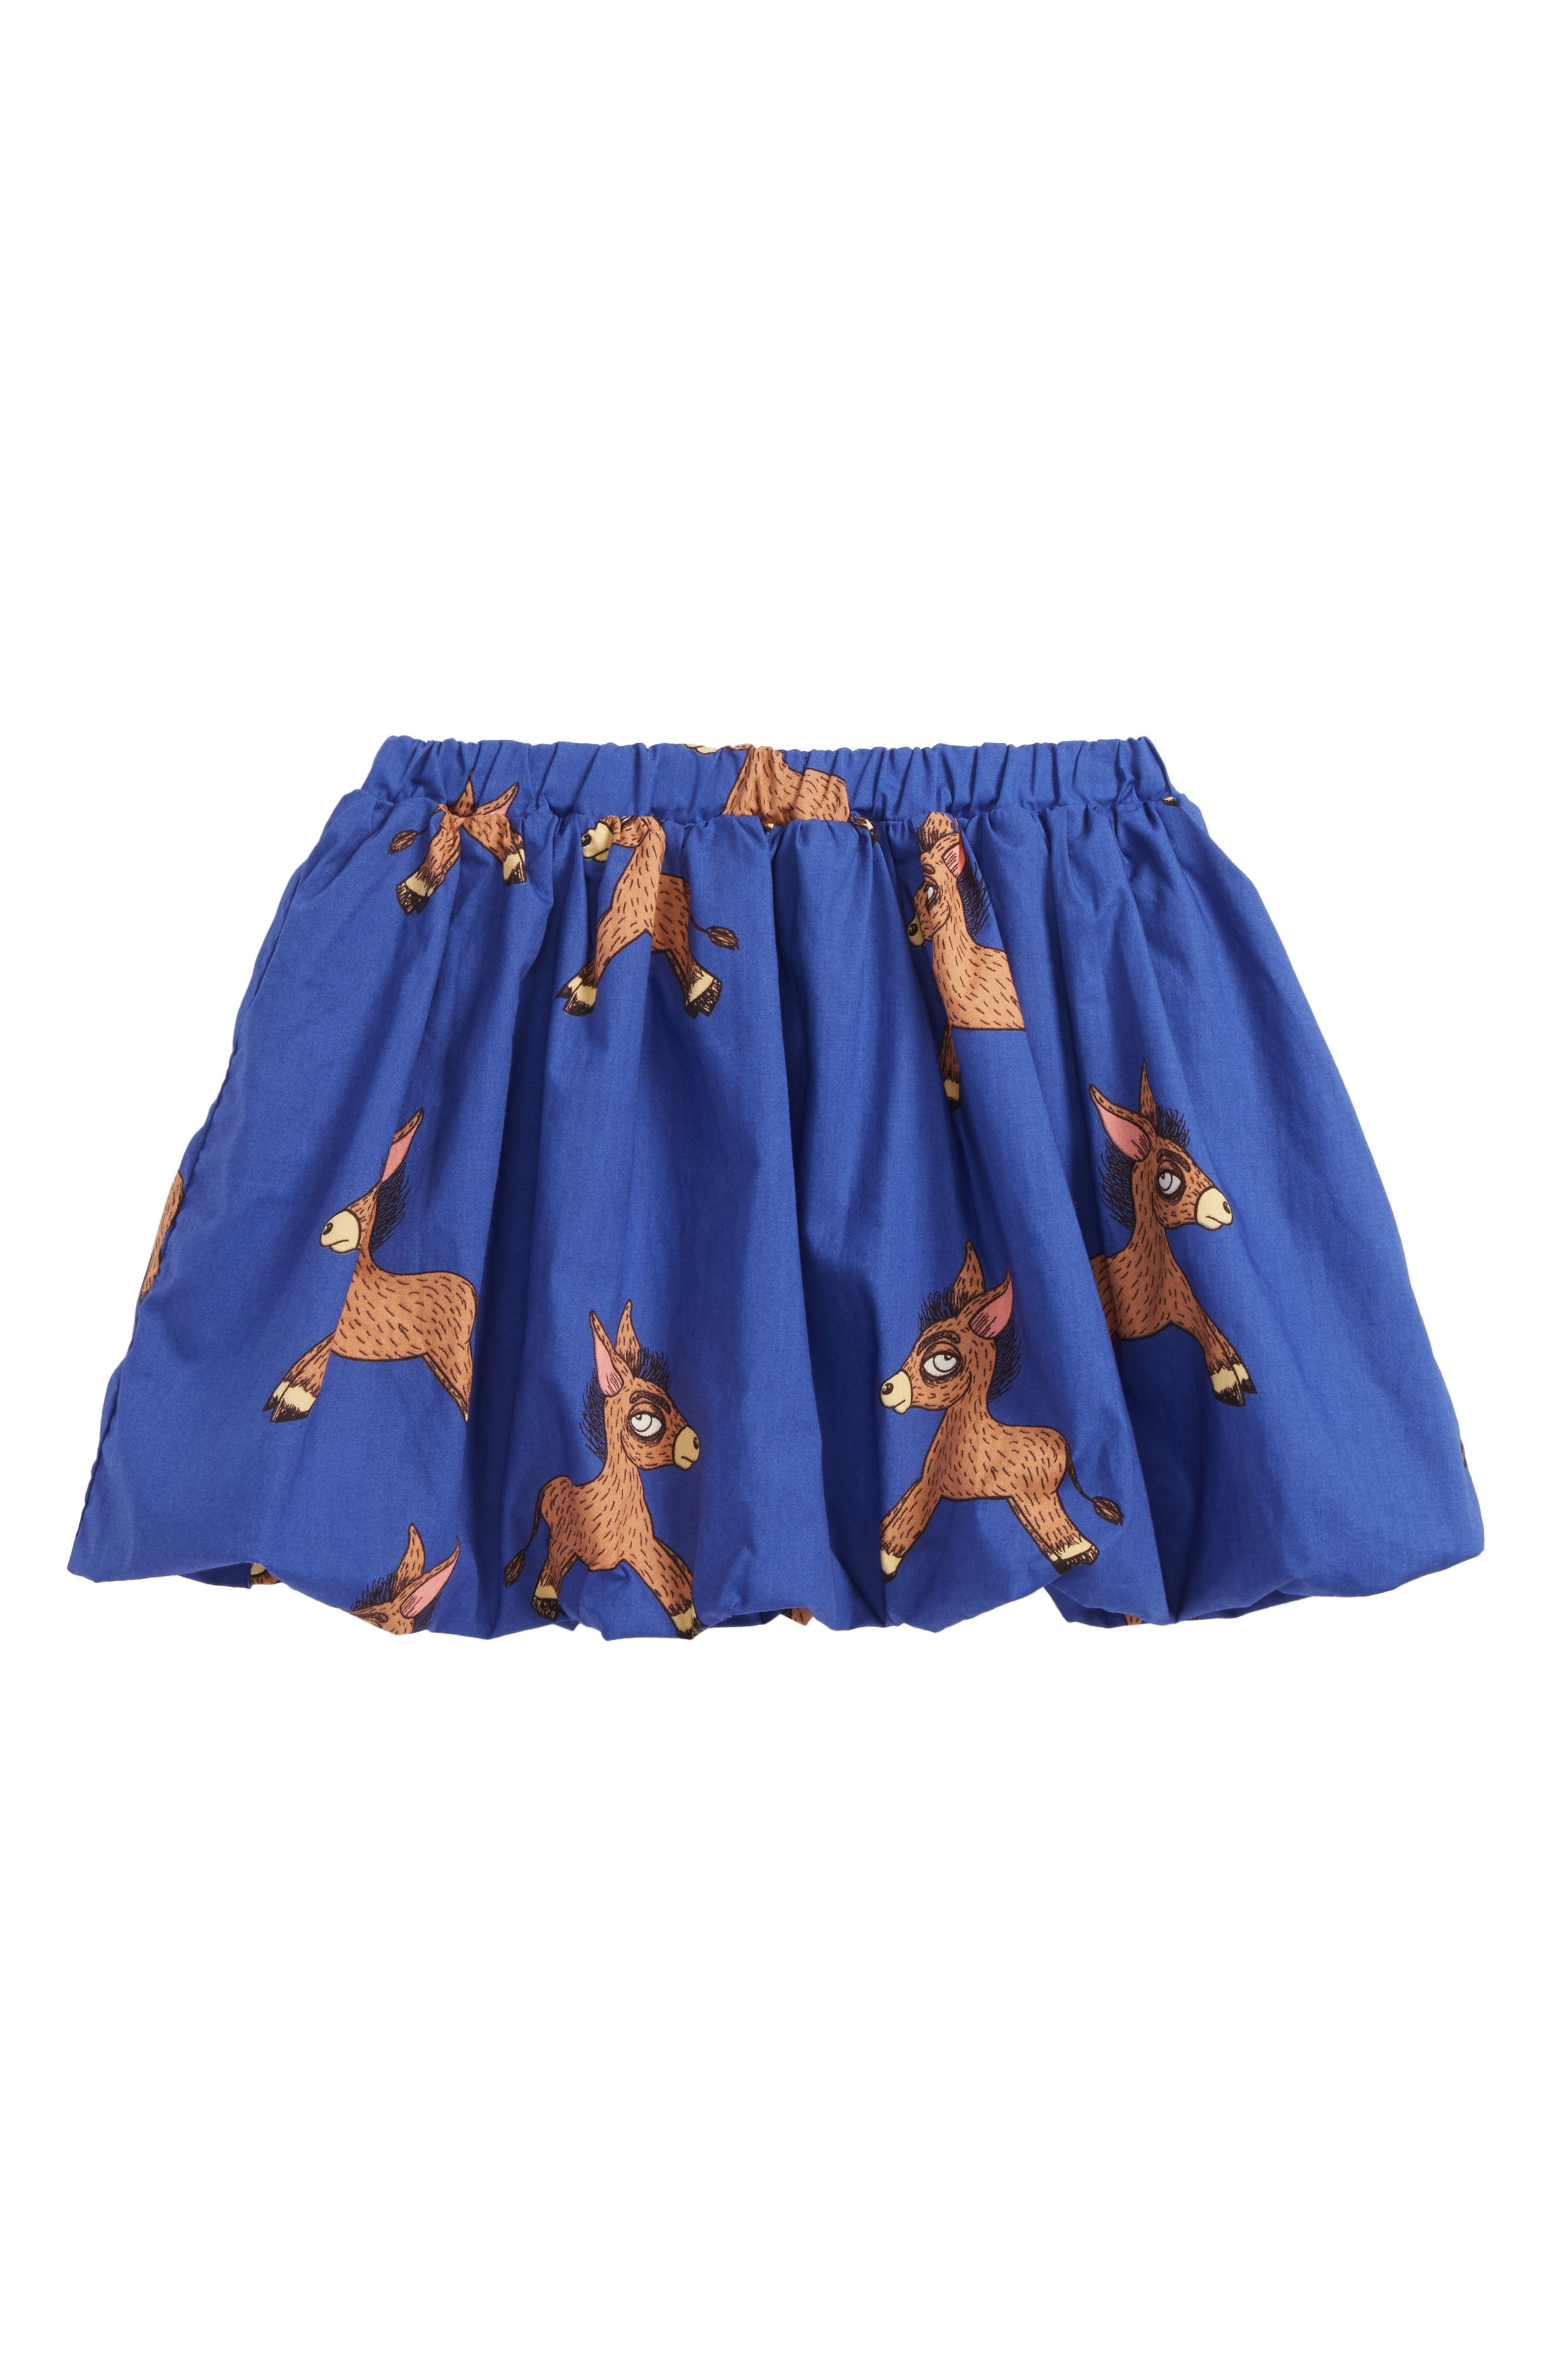 Donkey Print Woven Organic Cotton Balloon Skirt,                         Main,                         color, Blue